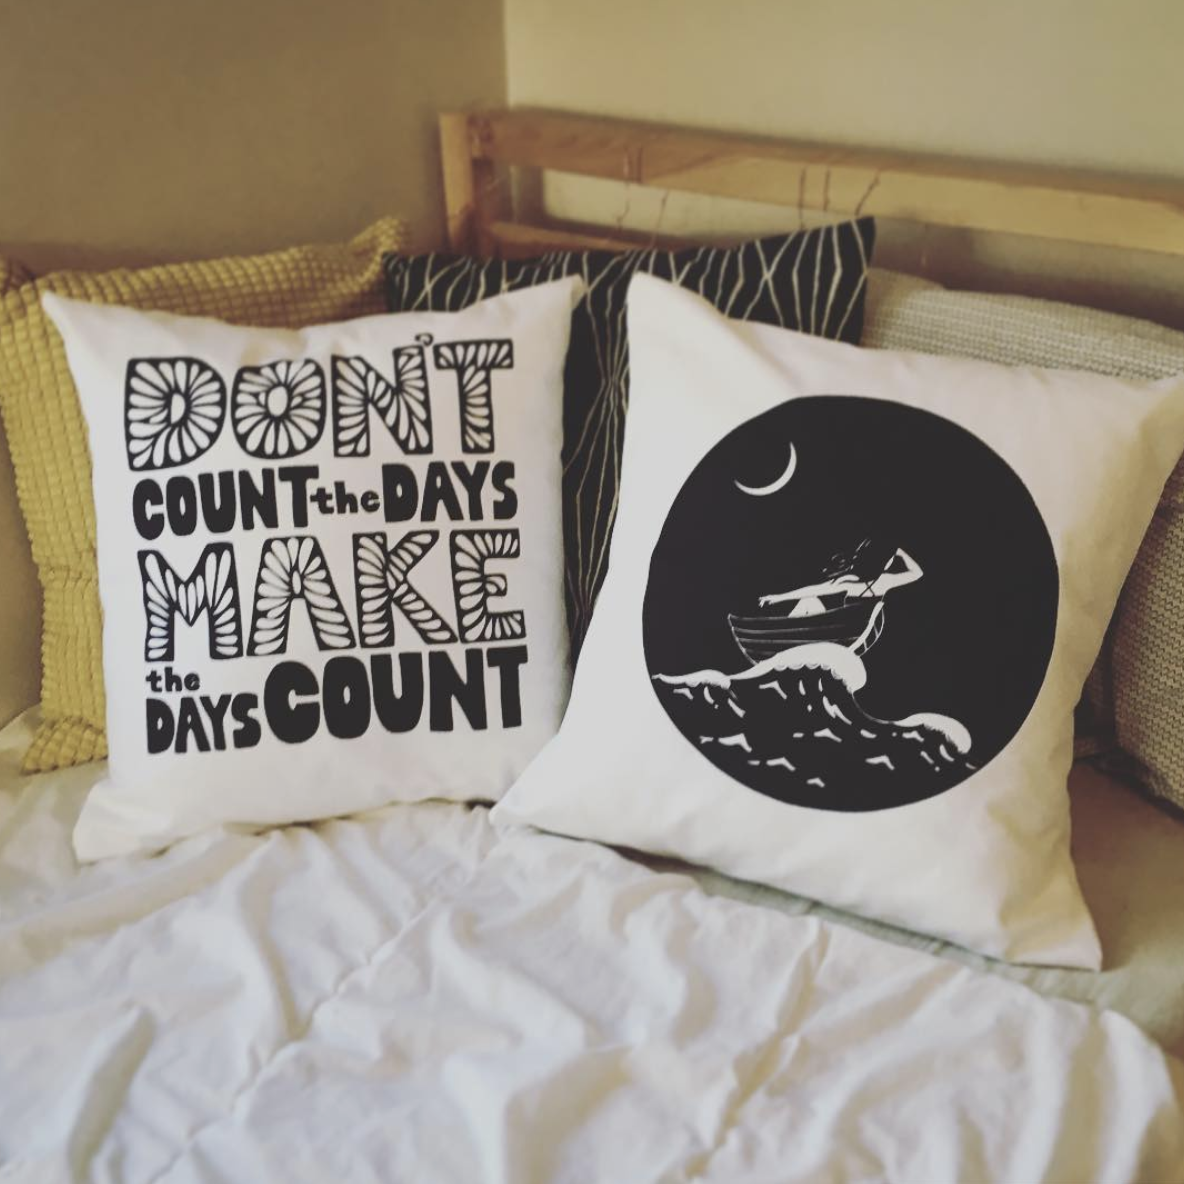 You can find a whole range of illustrated gifties–including beautiful hand lettered pillows!–over at  Inkerbelll's online shop .